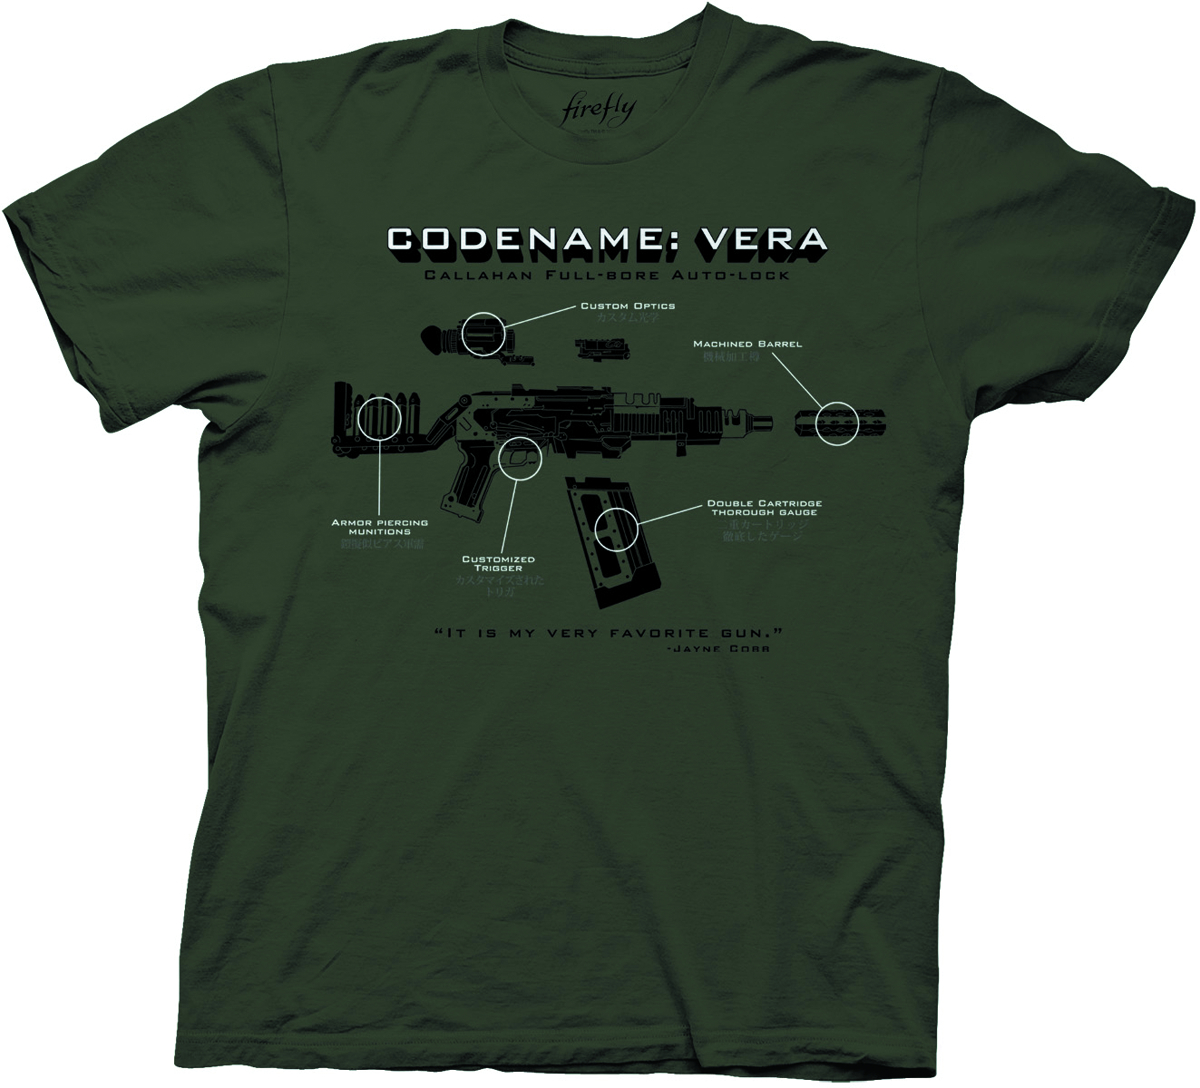 FIREFLY CODENAME VERA PX ARMY GREEN T/S LG